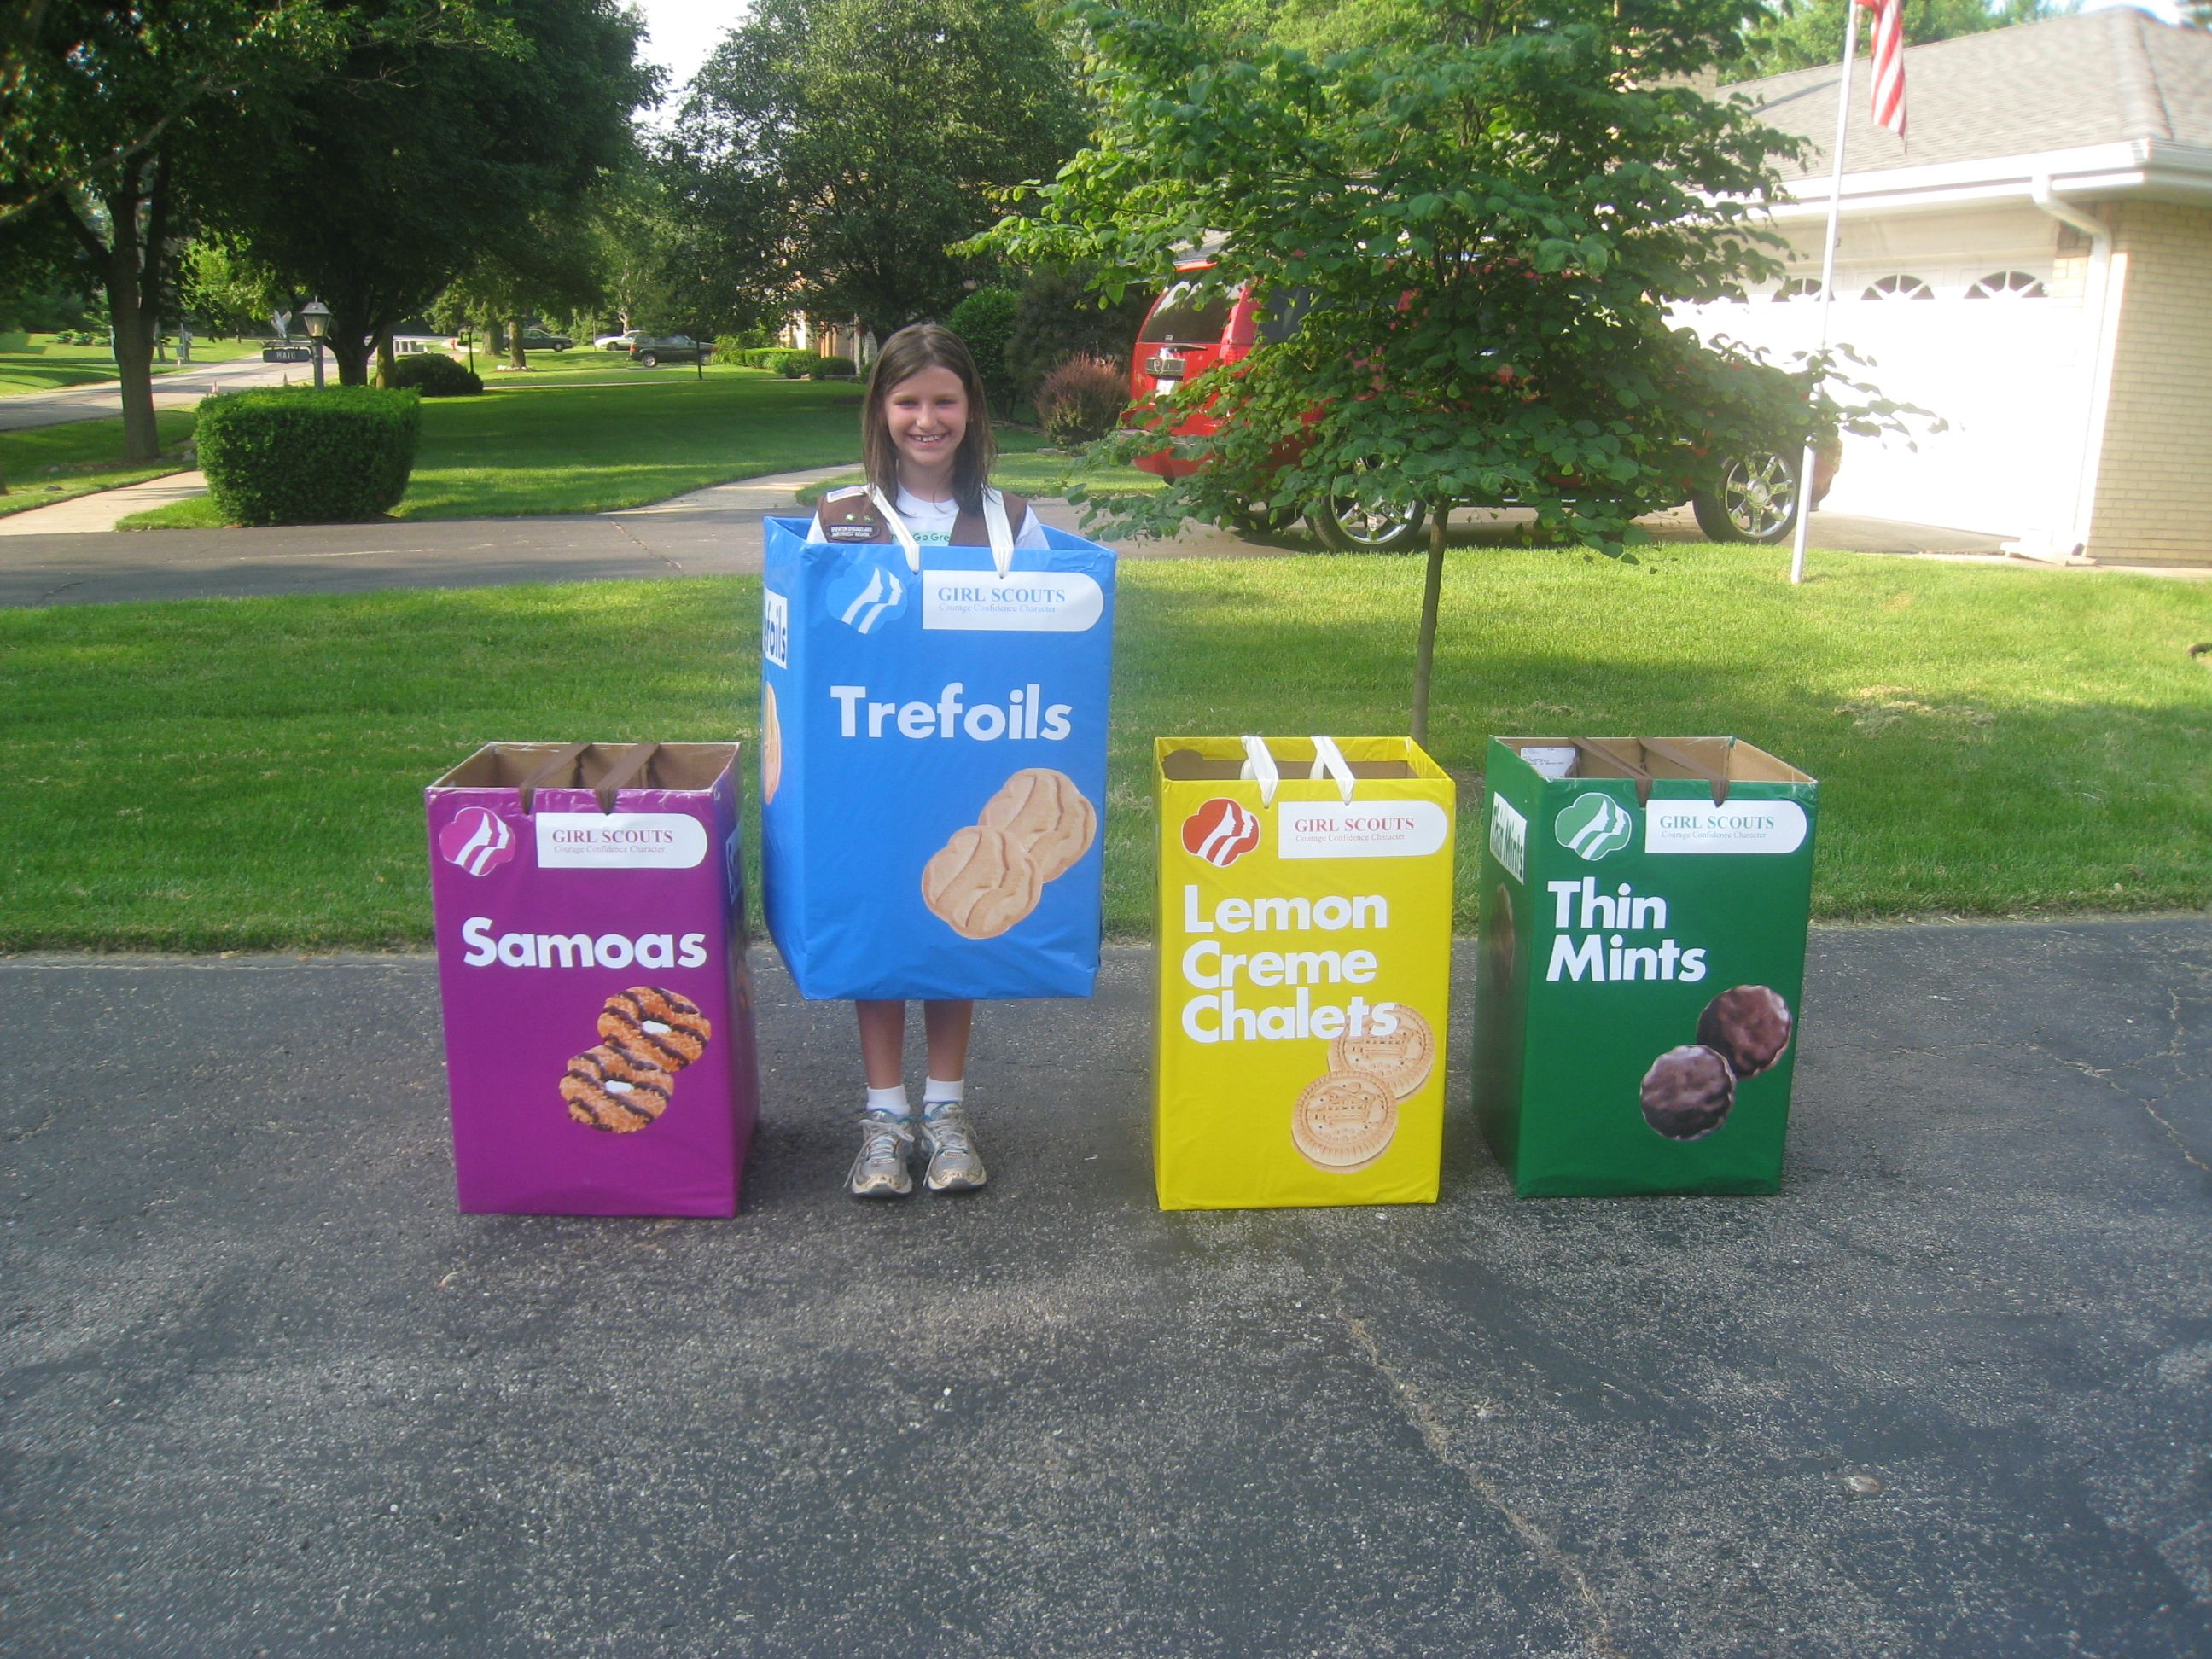 Girl scout scrapbook ideas - 17 Best Images About Girl Scouts On Pinterest Girl Scouts Brownies And Bottle Caps